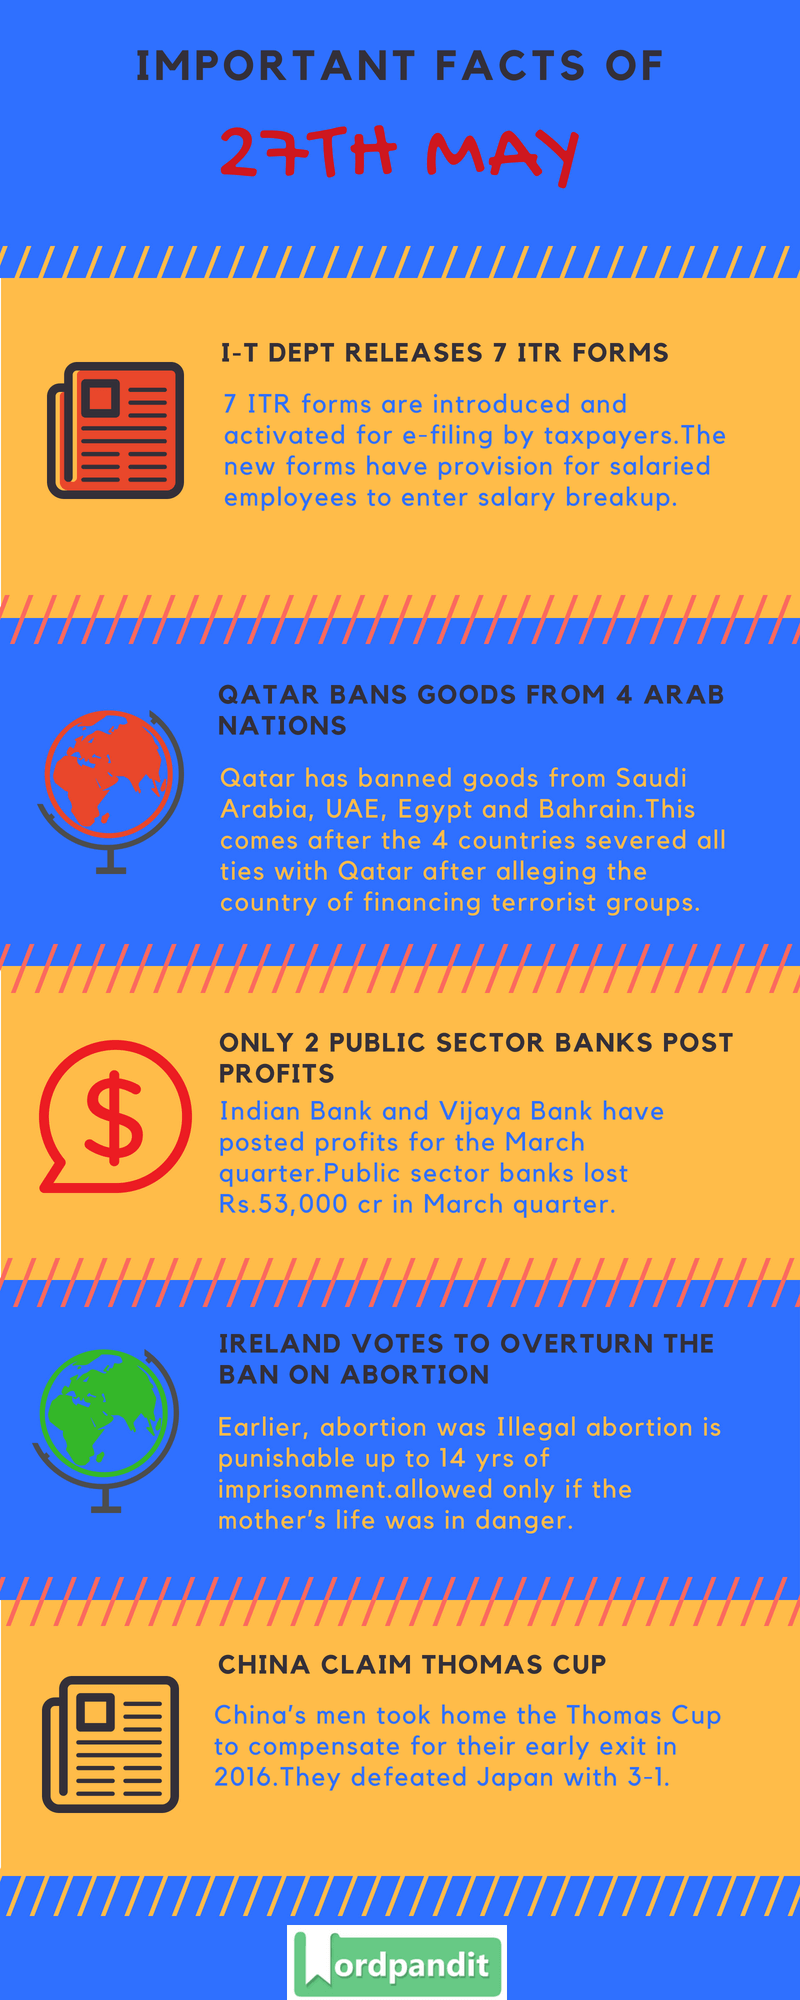 Daily Current Affairs 27 May 2018 Current Affairs Quiz May 27 2018 Current Affairs Infographic